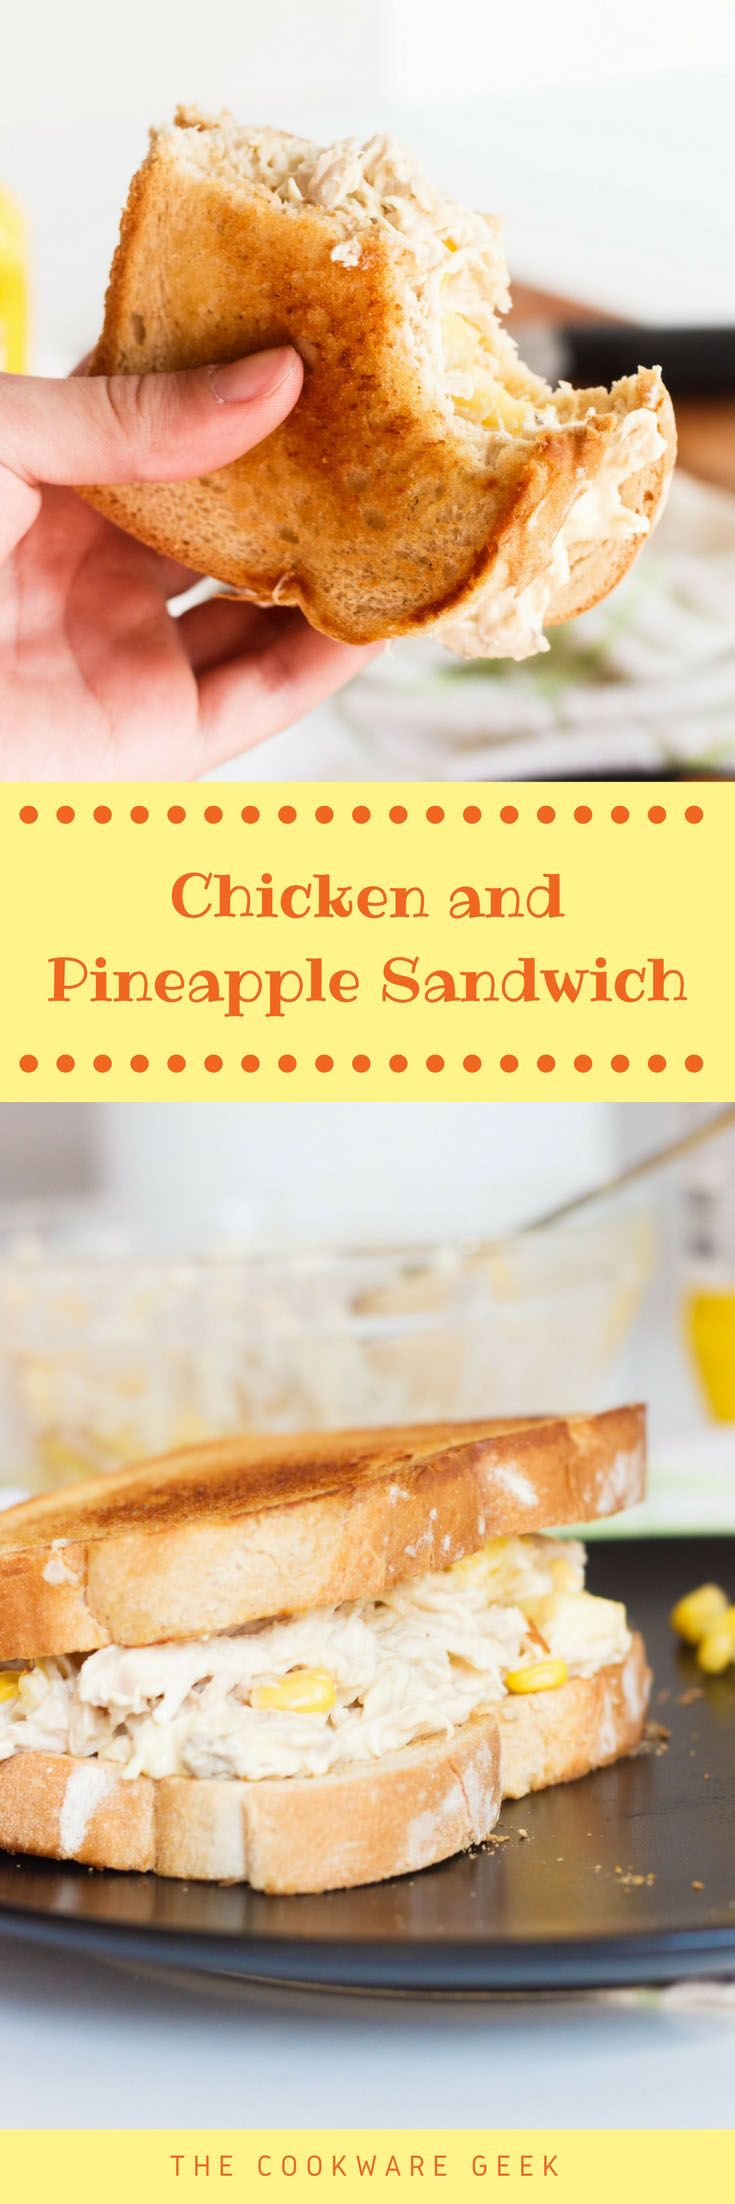 Chicken and Pineapple Sandwich - This Chicken and pineapple sandwich will be your new obsession for a   quick dinner. This is a Portuguese street food recipe that has tons of   flavor! The Cookware Geek